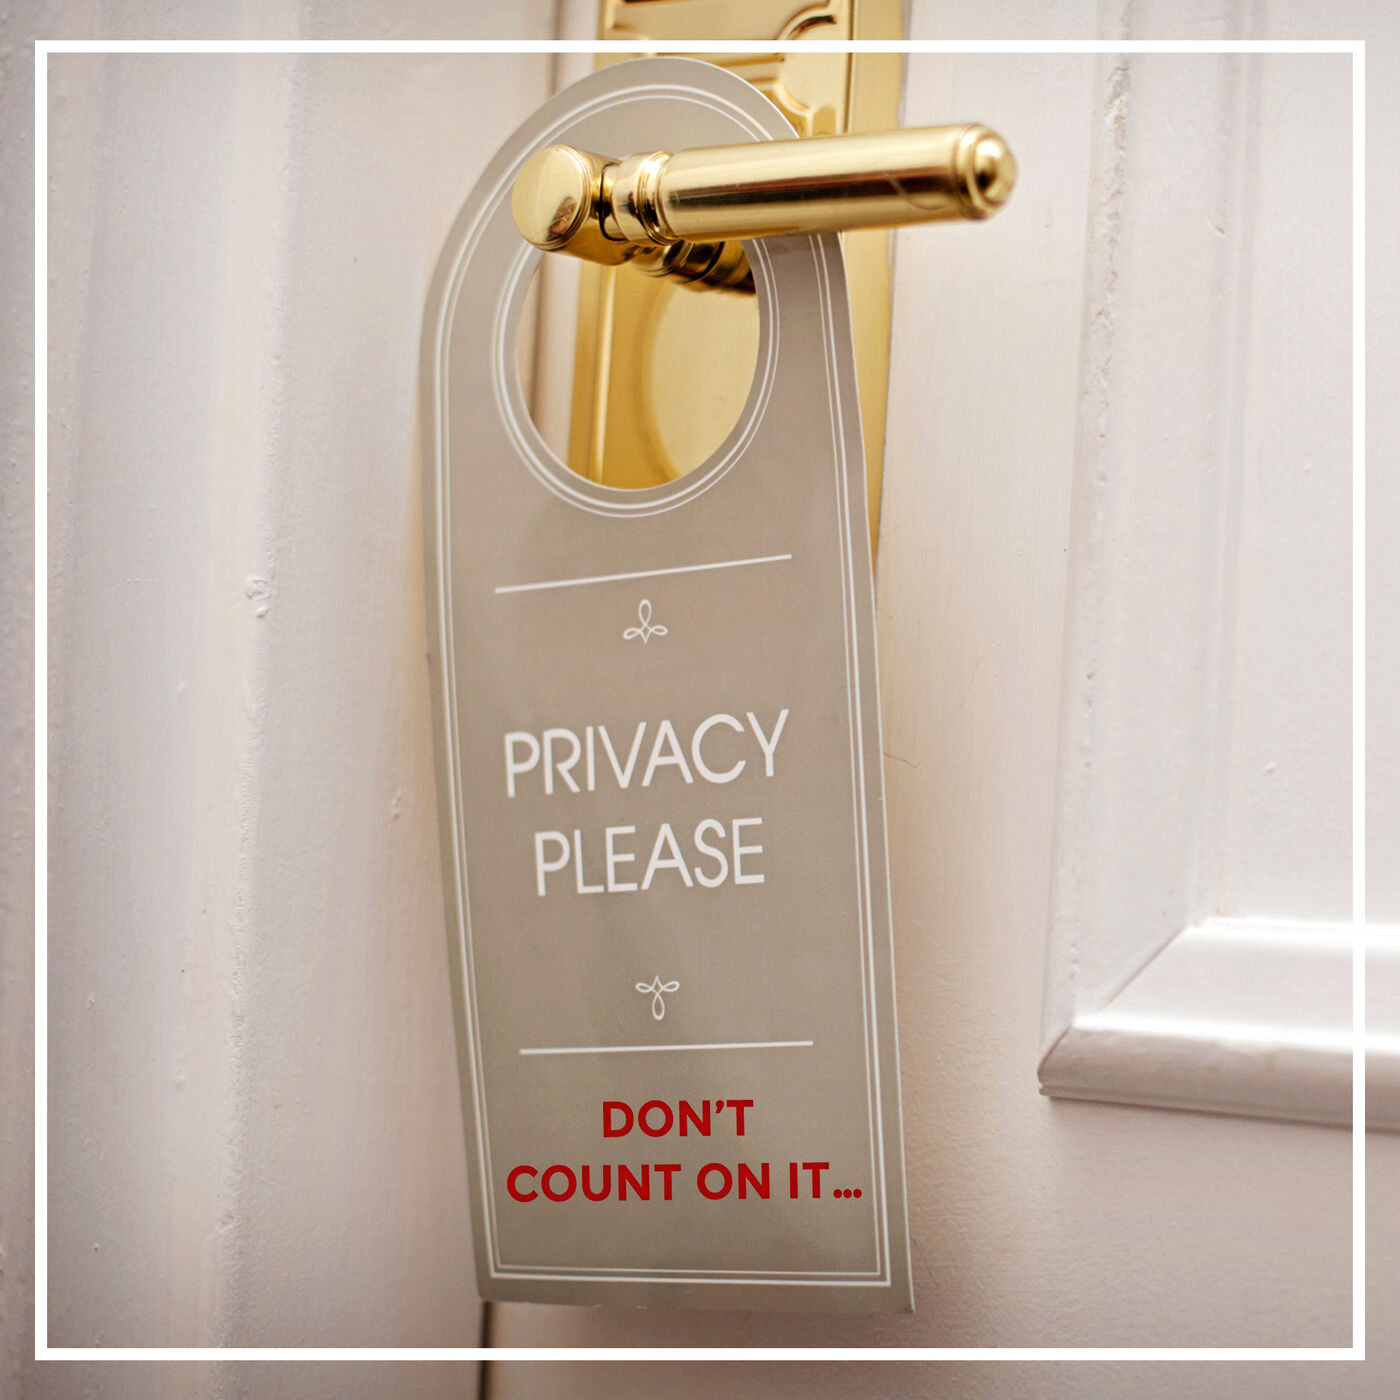 Privacy Please! - Don't Count on It. Court says you have NO reasonable expectation of online privacy.